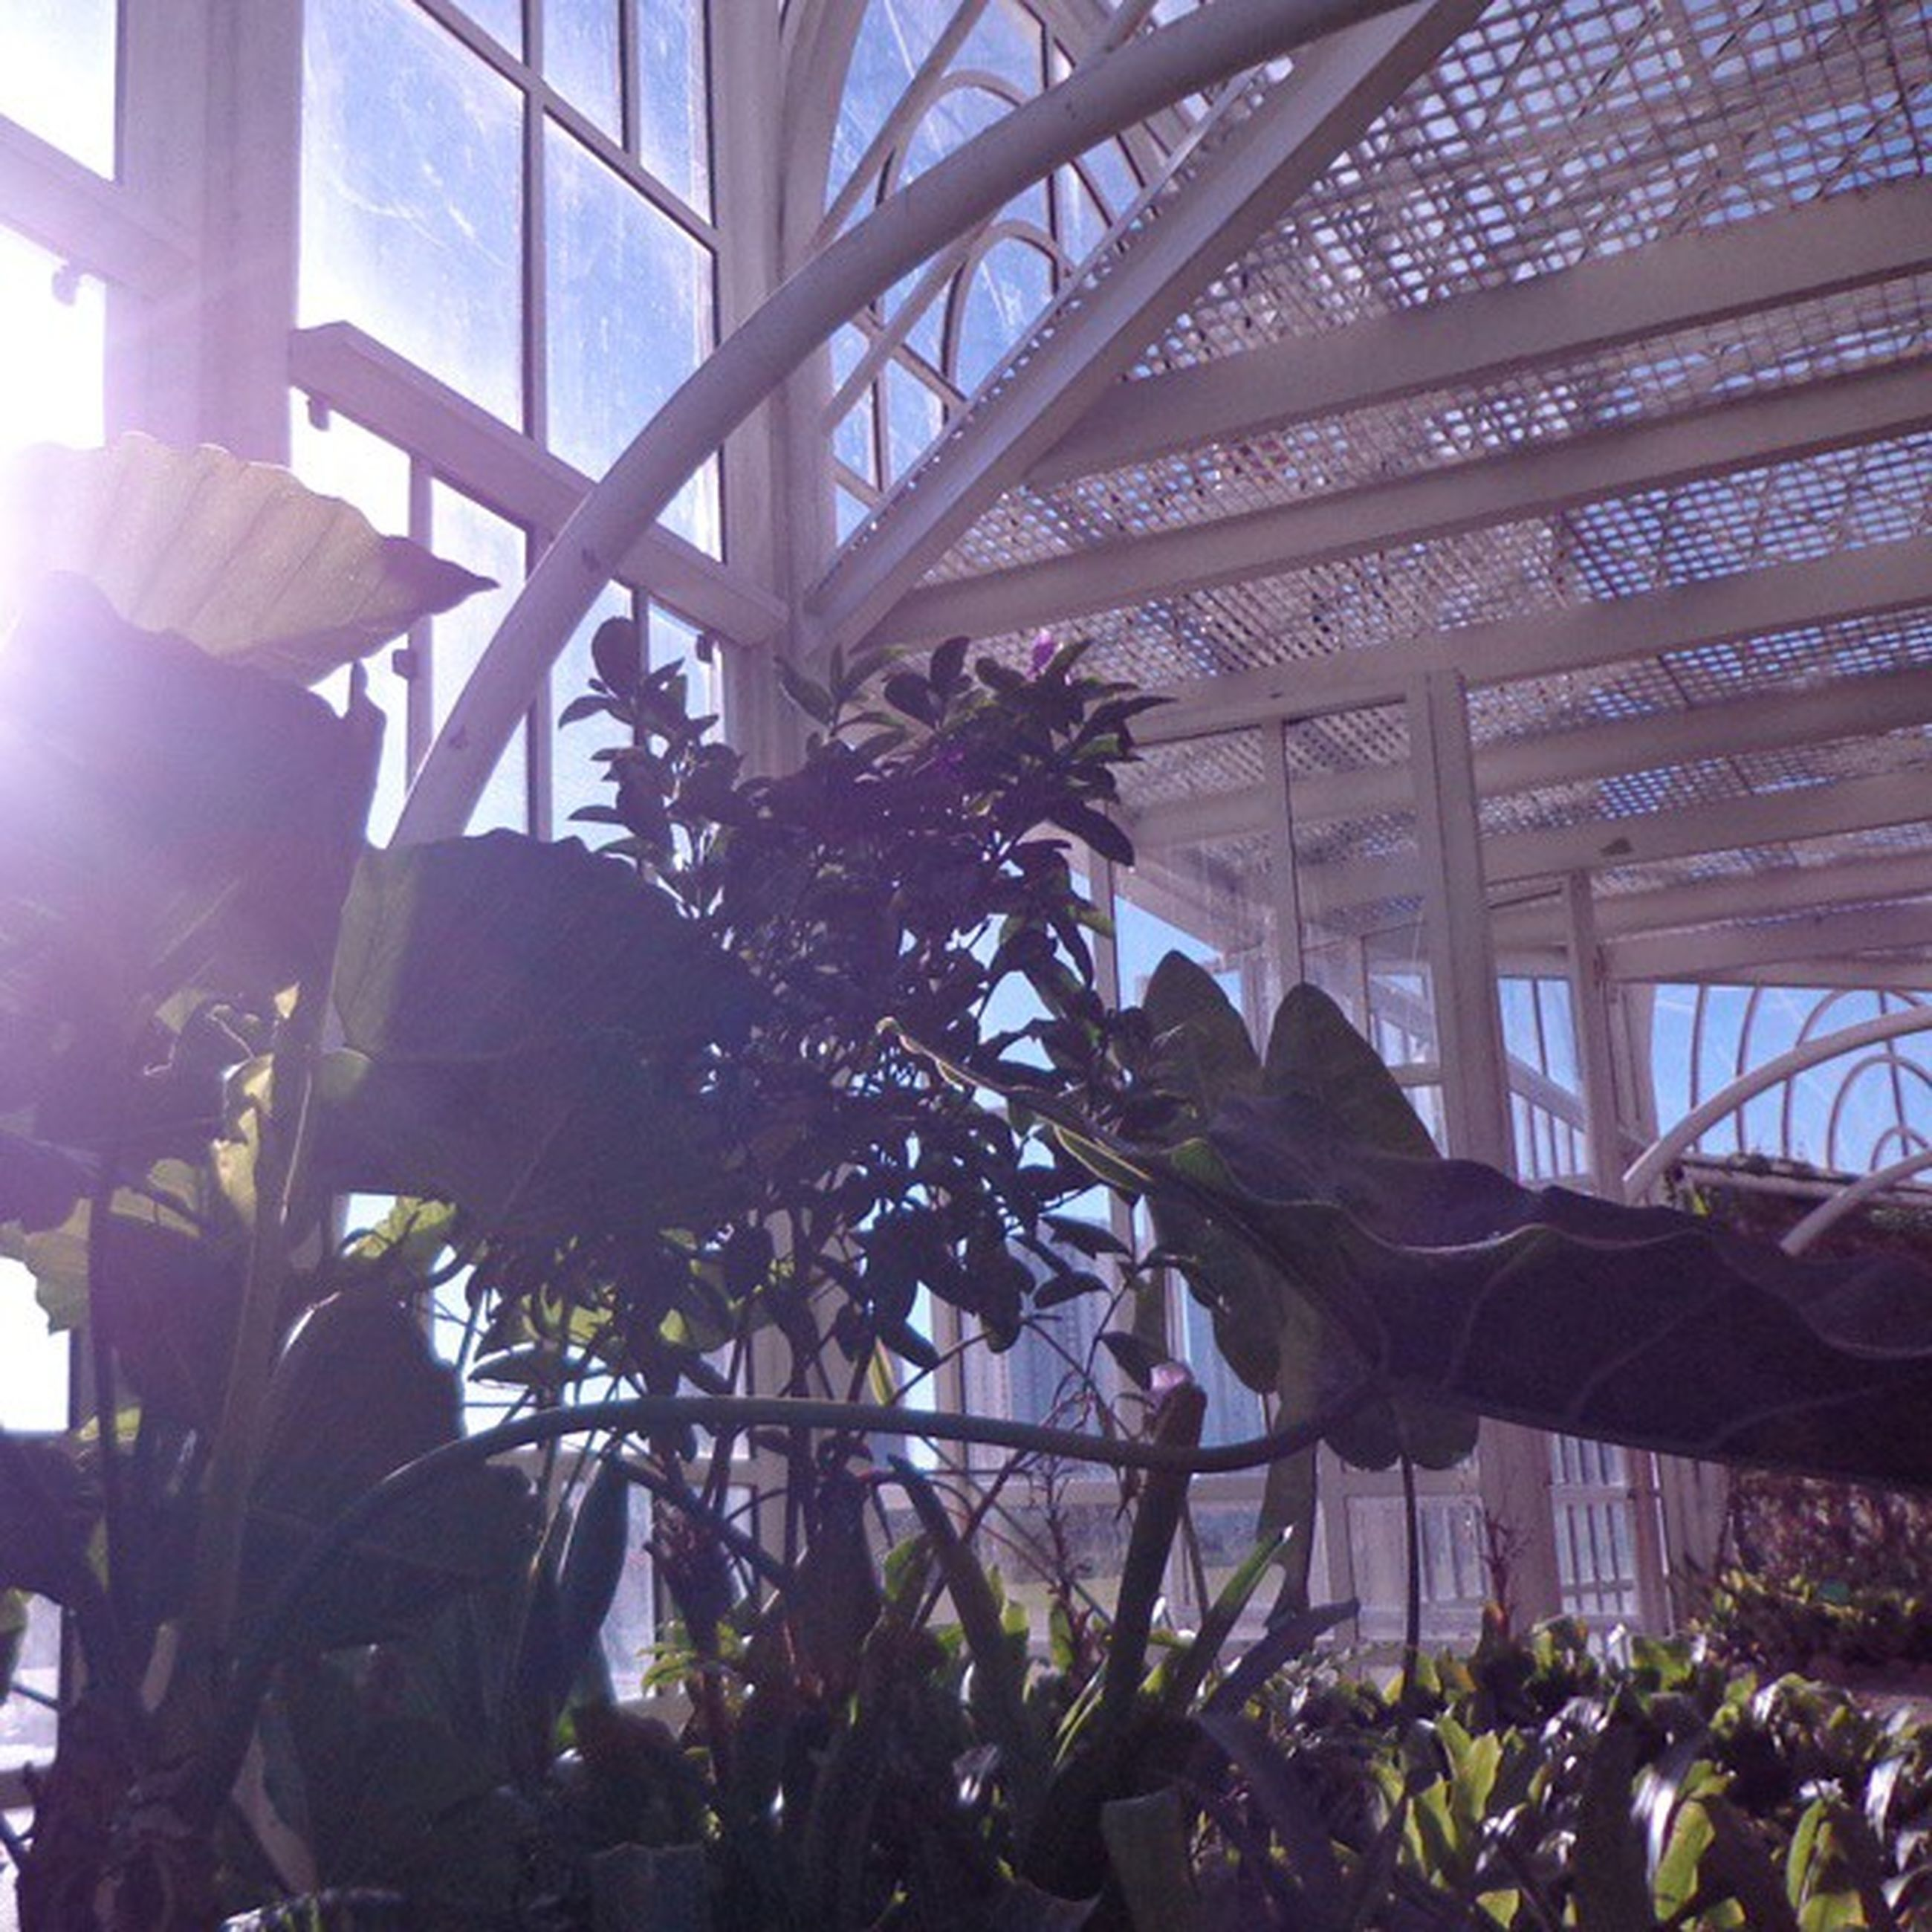 built structure, architecture, indoors, plant, low angle view, building exterior, sunlight, leaf, glass - material, ceiling, potted plant, day, growth, window, building, no people, modern, flower, greenhouse, balcony